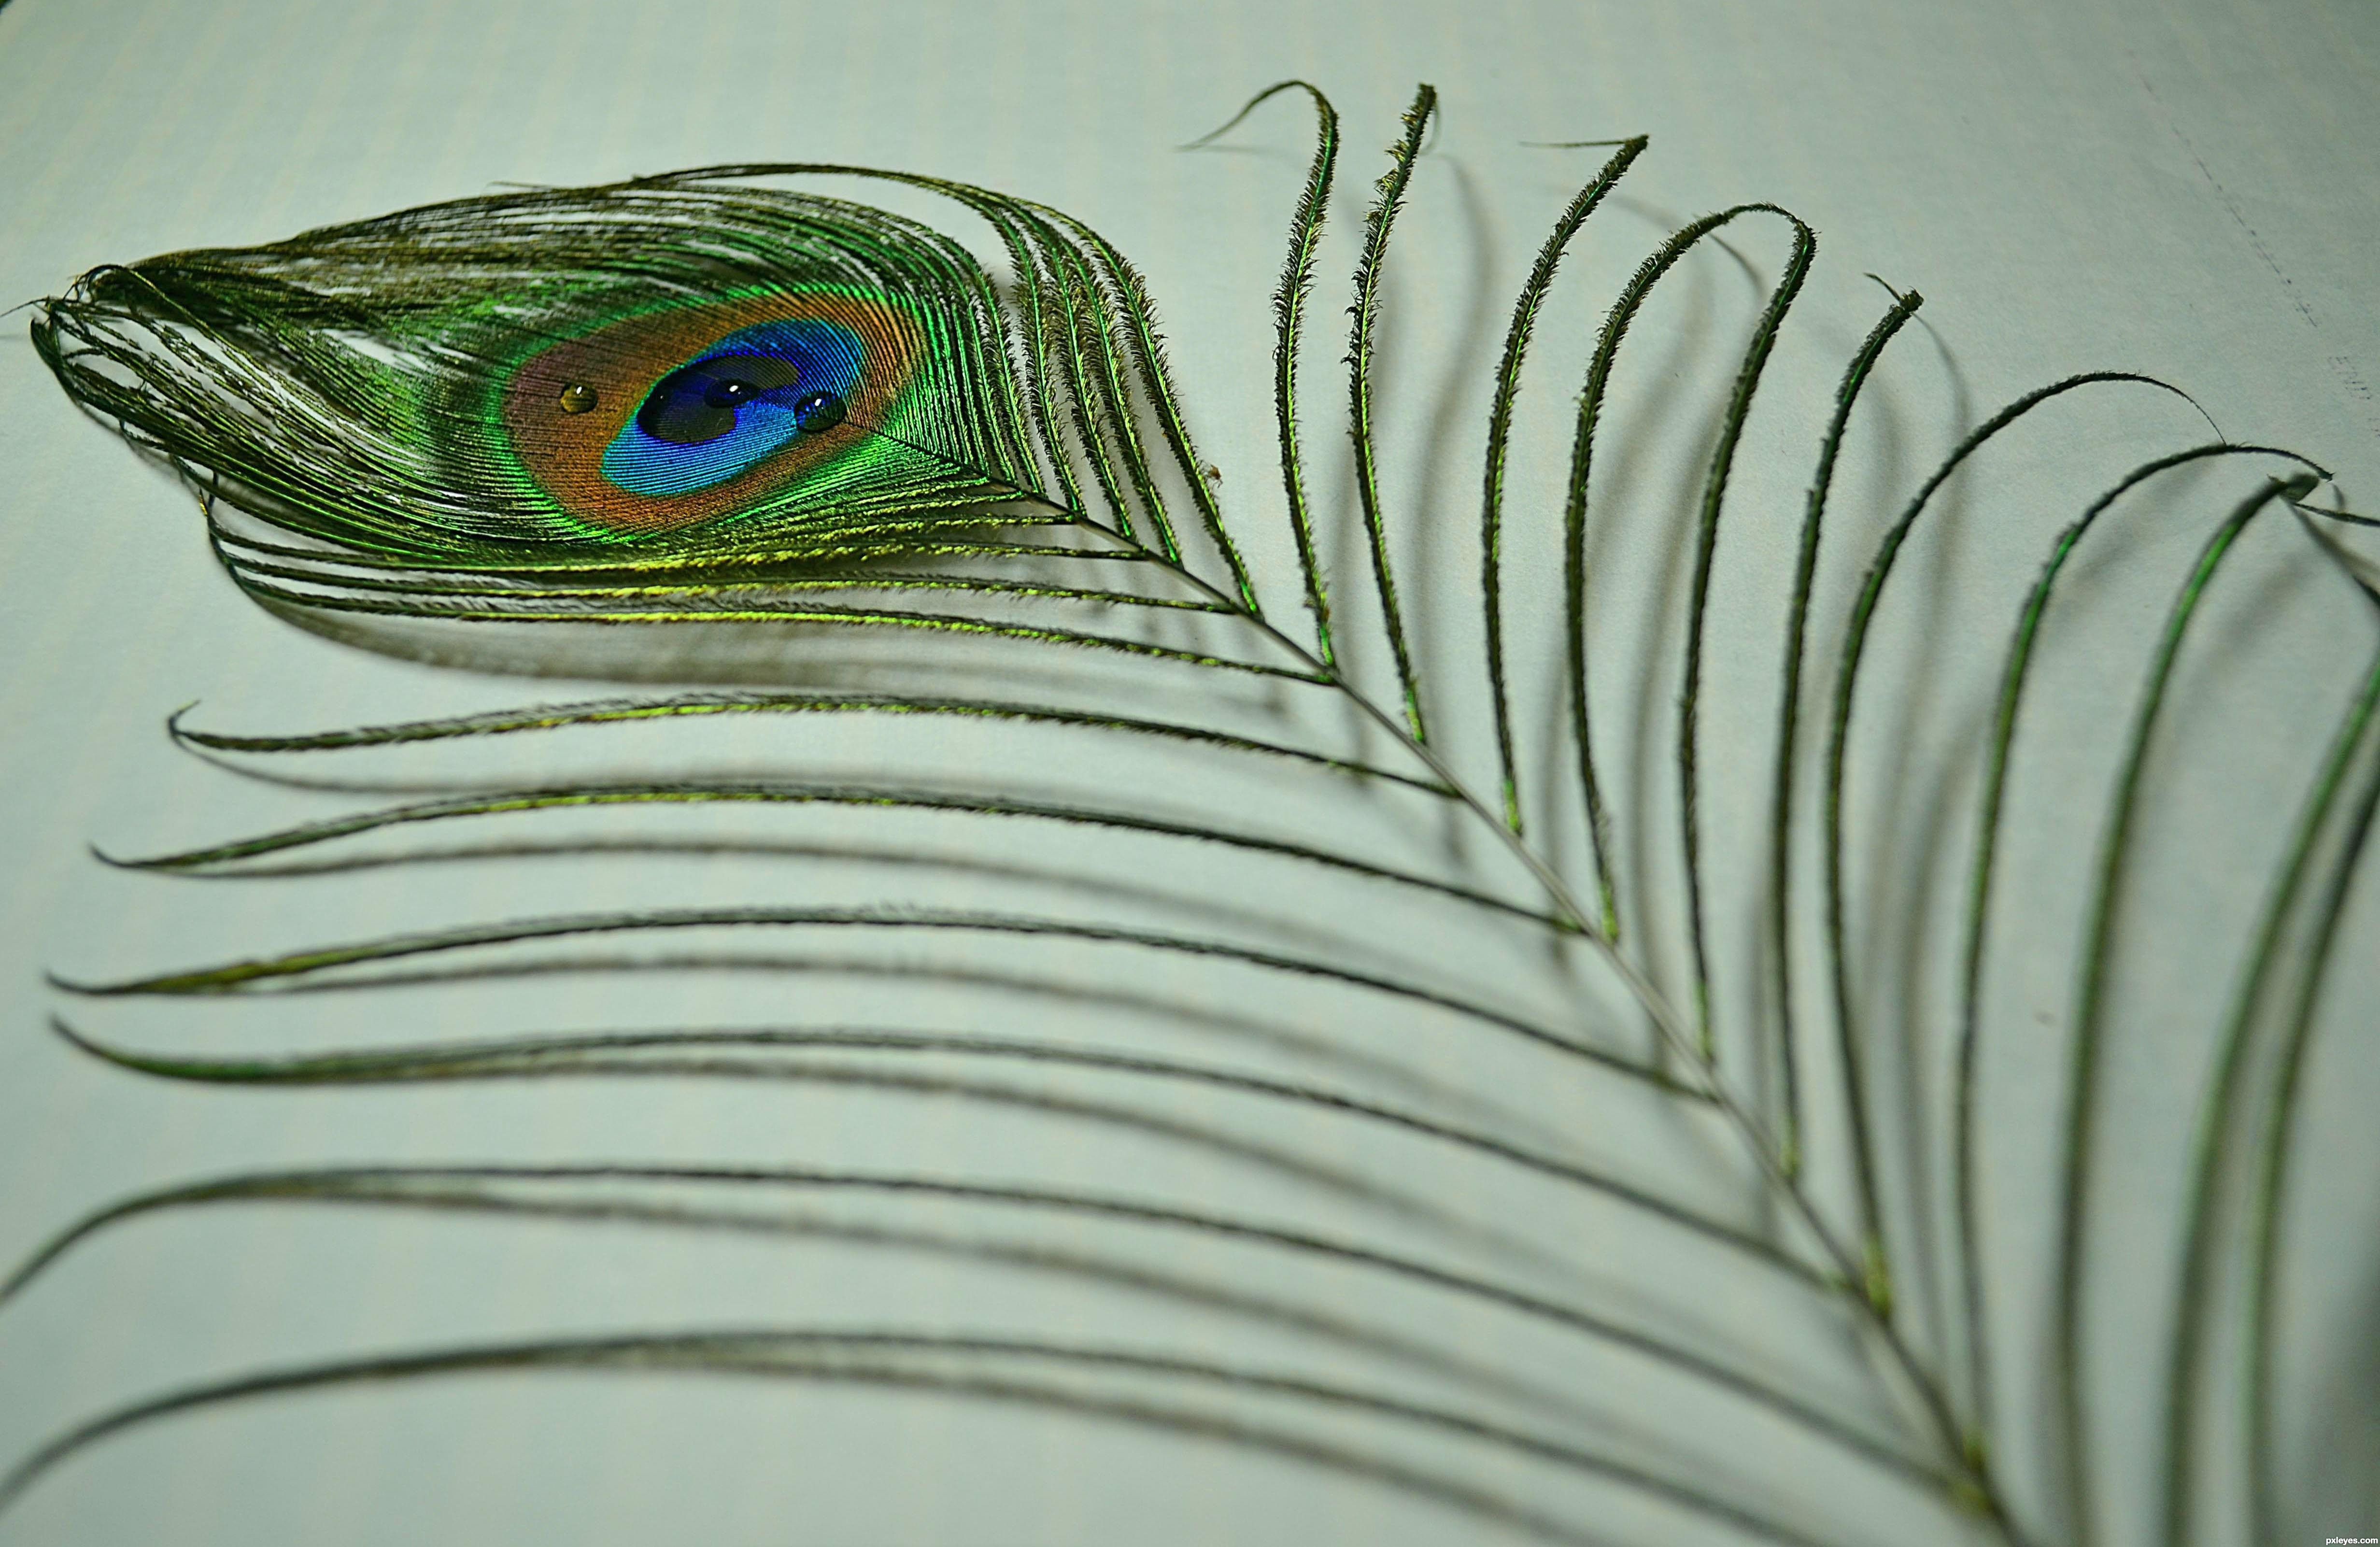 Peacock feather picture, by drskn08 for: singles 2 photography contest ...